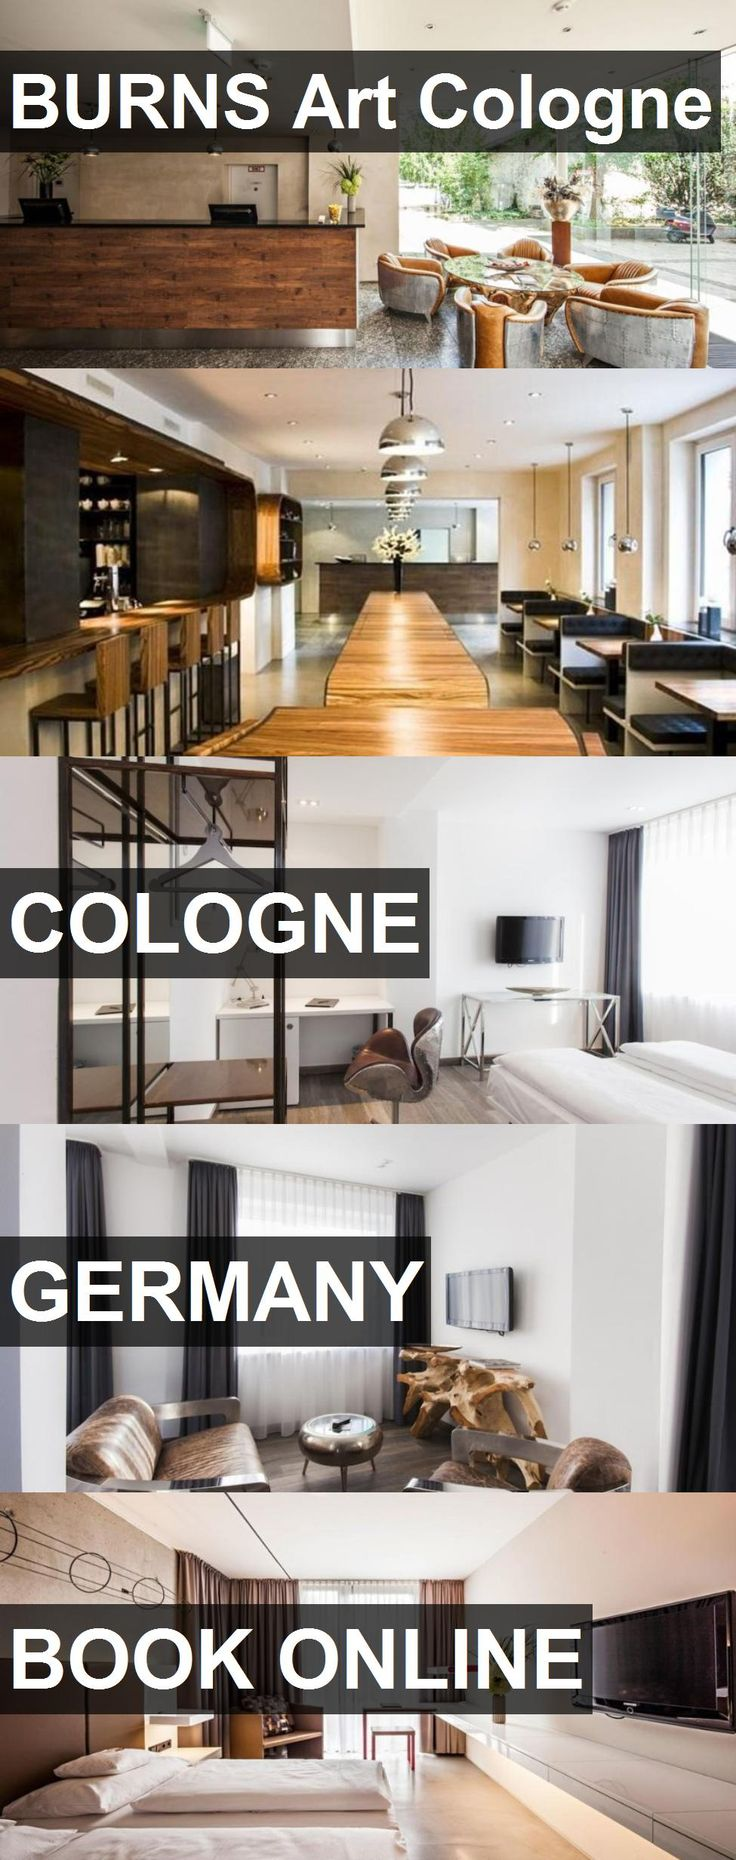 Hotel BURNS Art Cologne in Cologne, Germany. For more information, photos, reviews and best prices please follow the link. #Germany #Cologne #BURNSArtCologne #hotel #travel #vacation